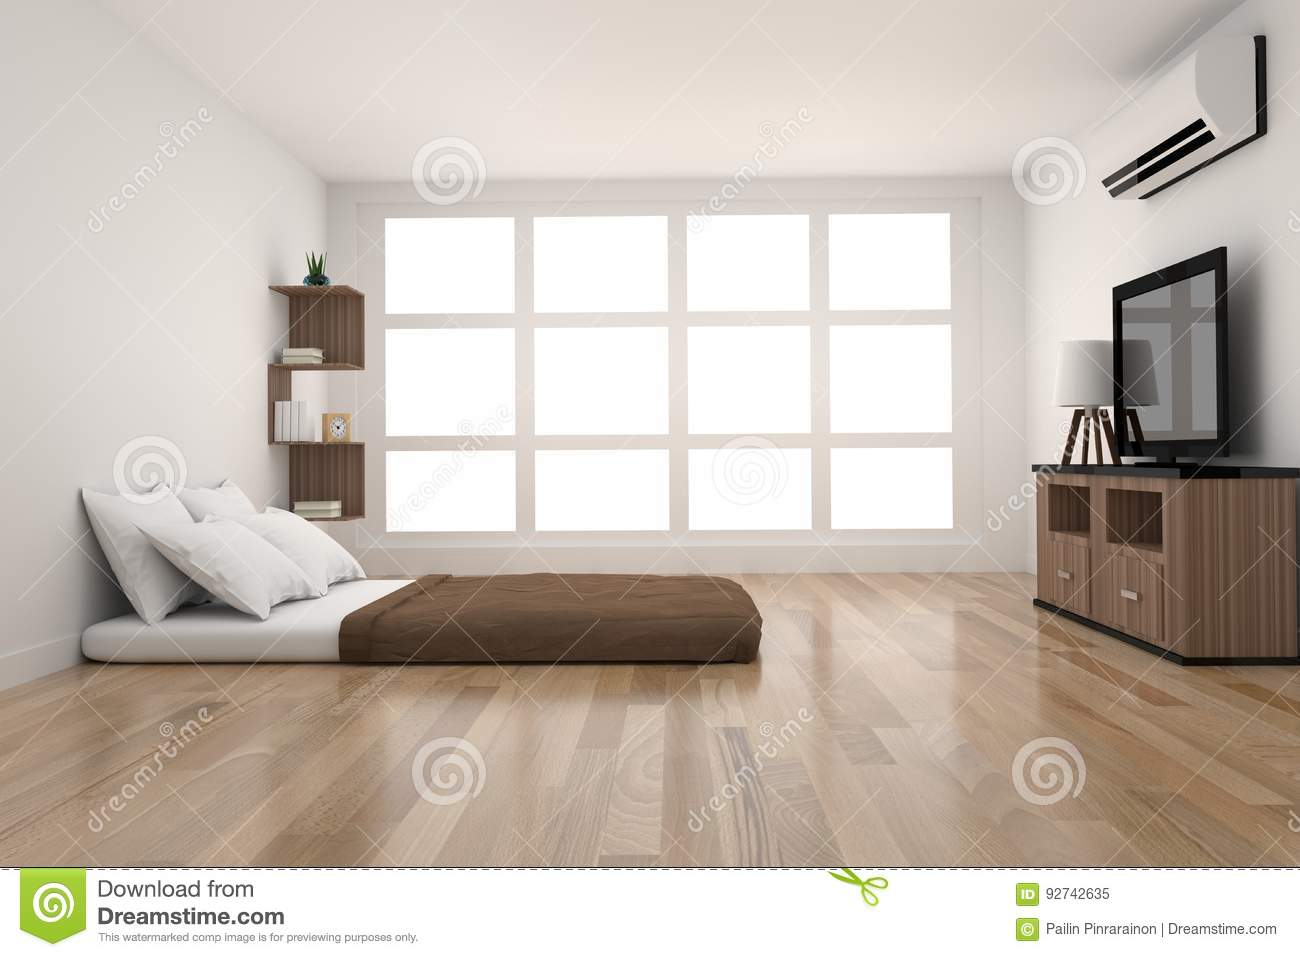 Modern Bedroom Decoration In Parquet Wood Design With